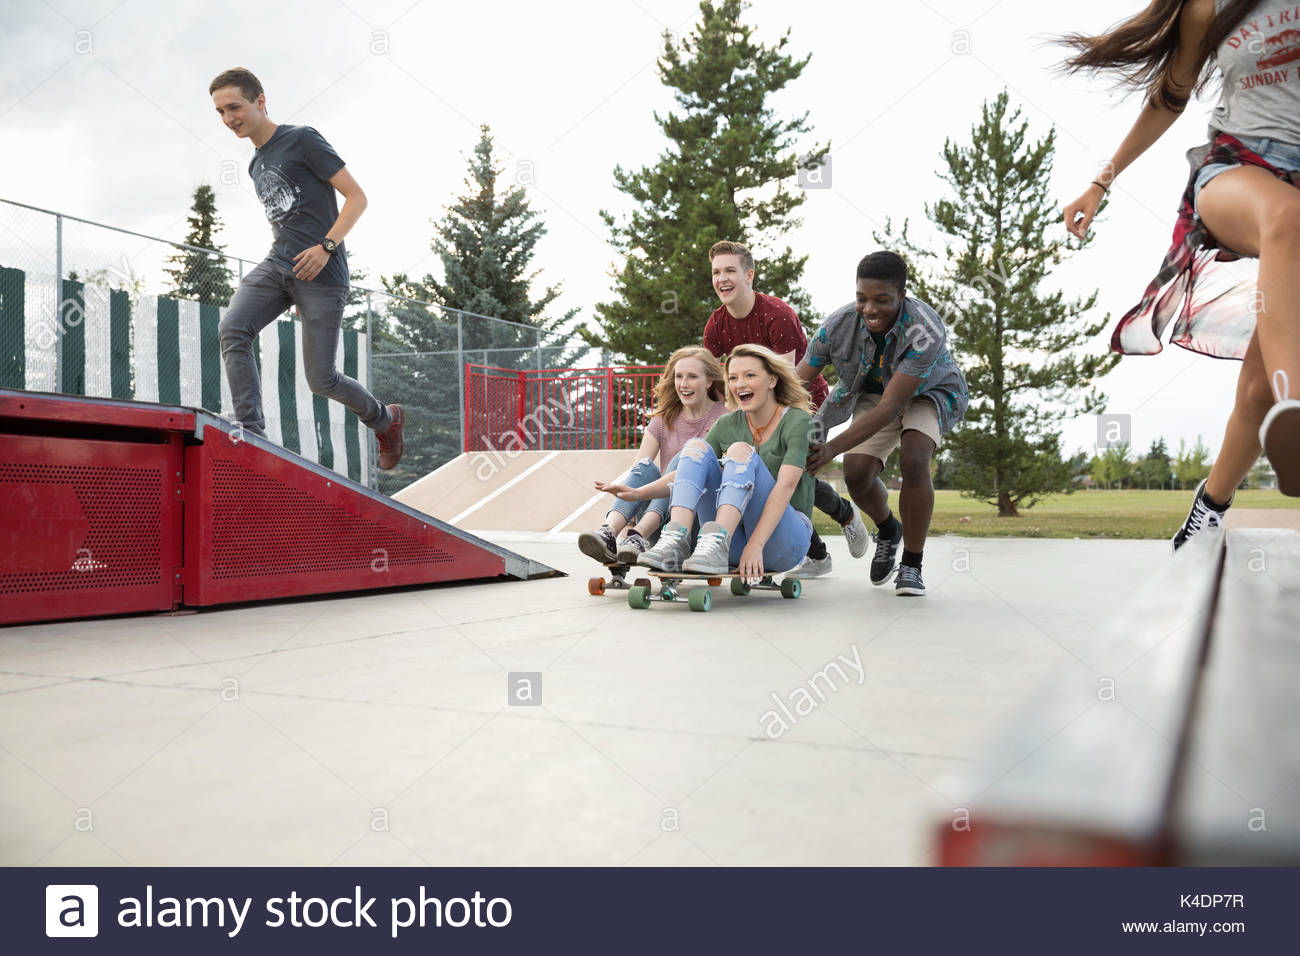 Playful teenage friends playing, pushing skateboards in skate park - Stock Image